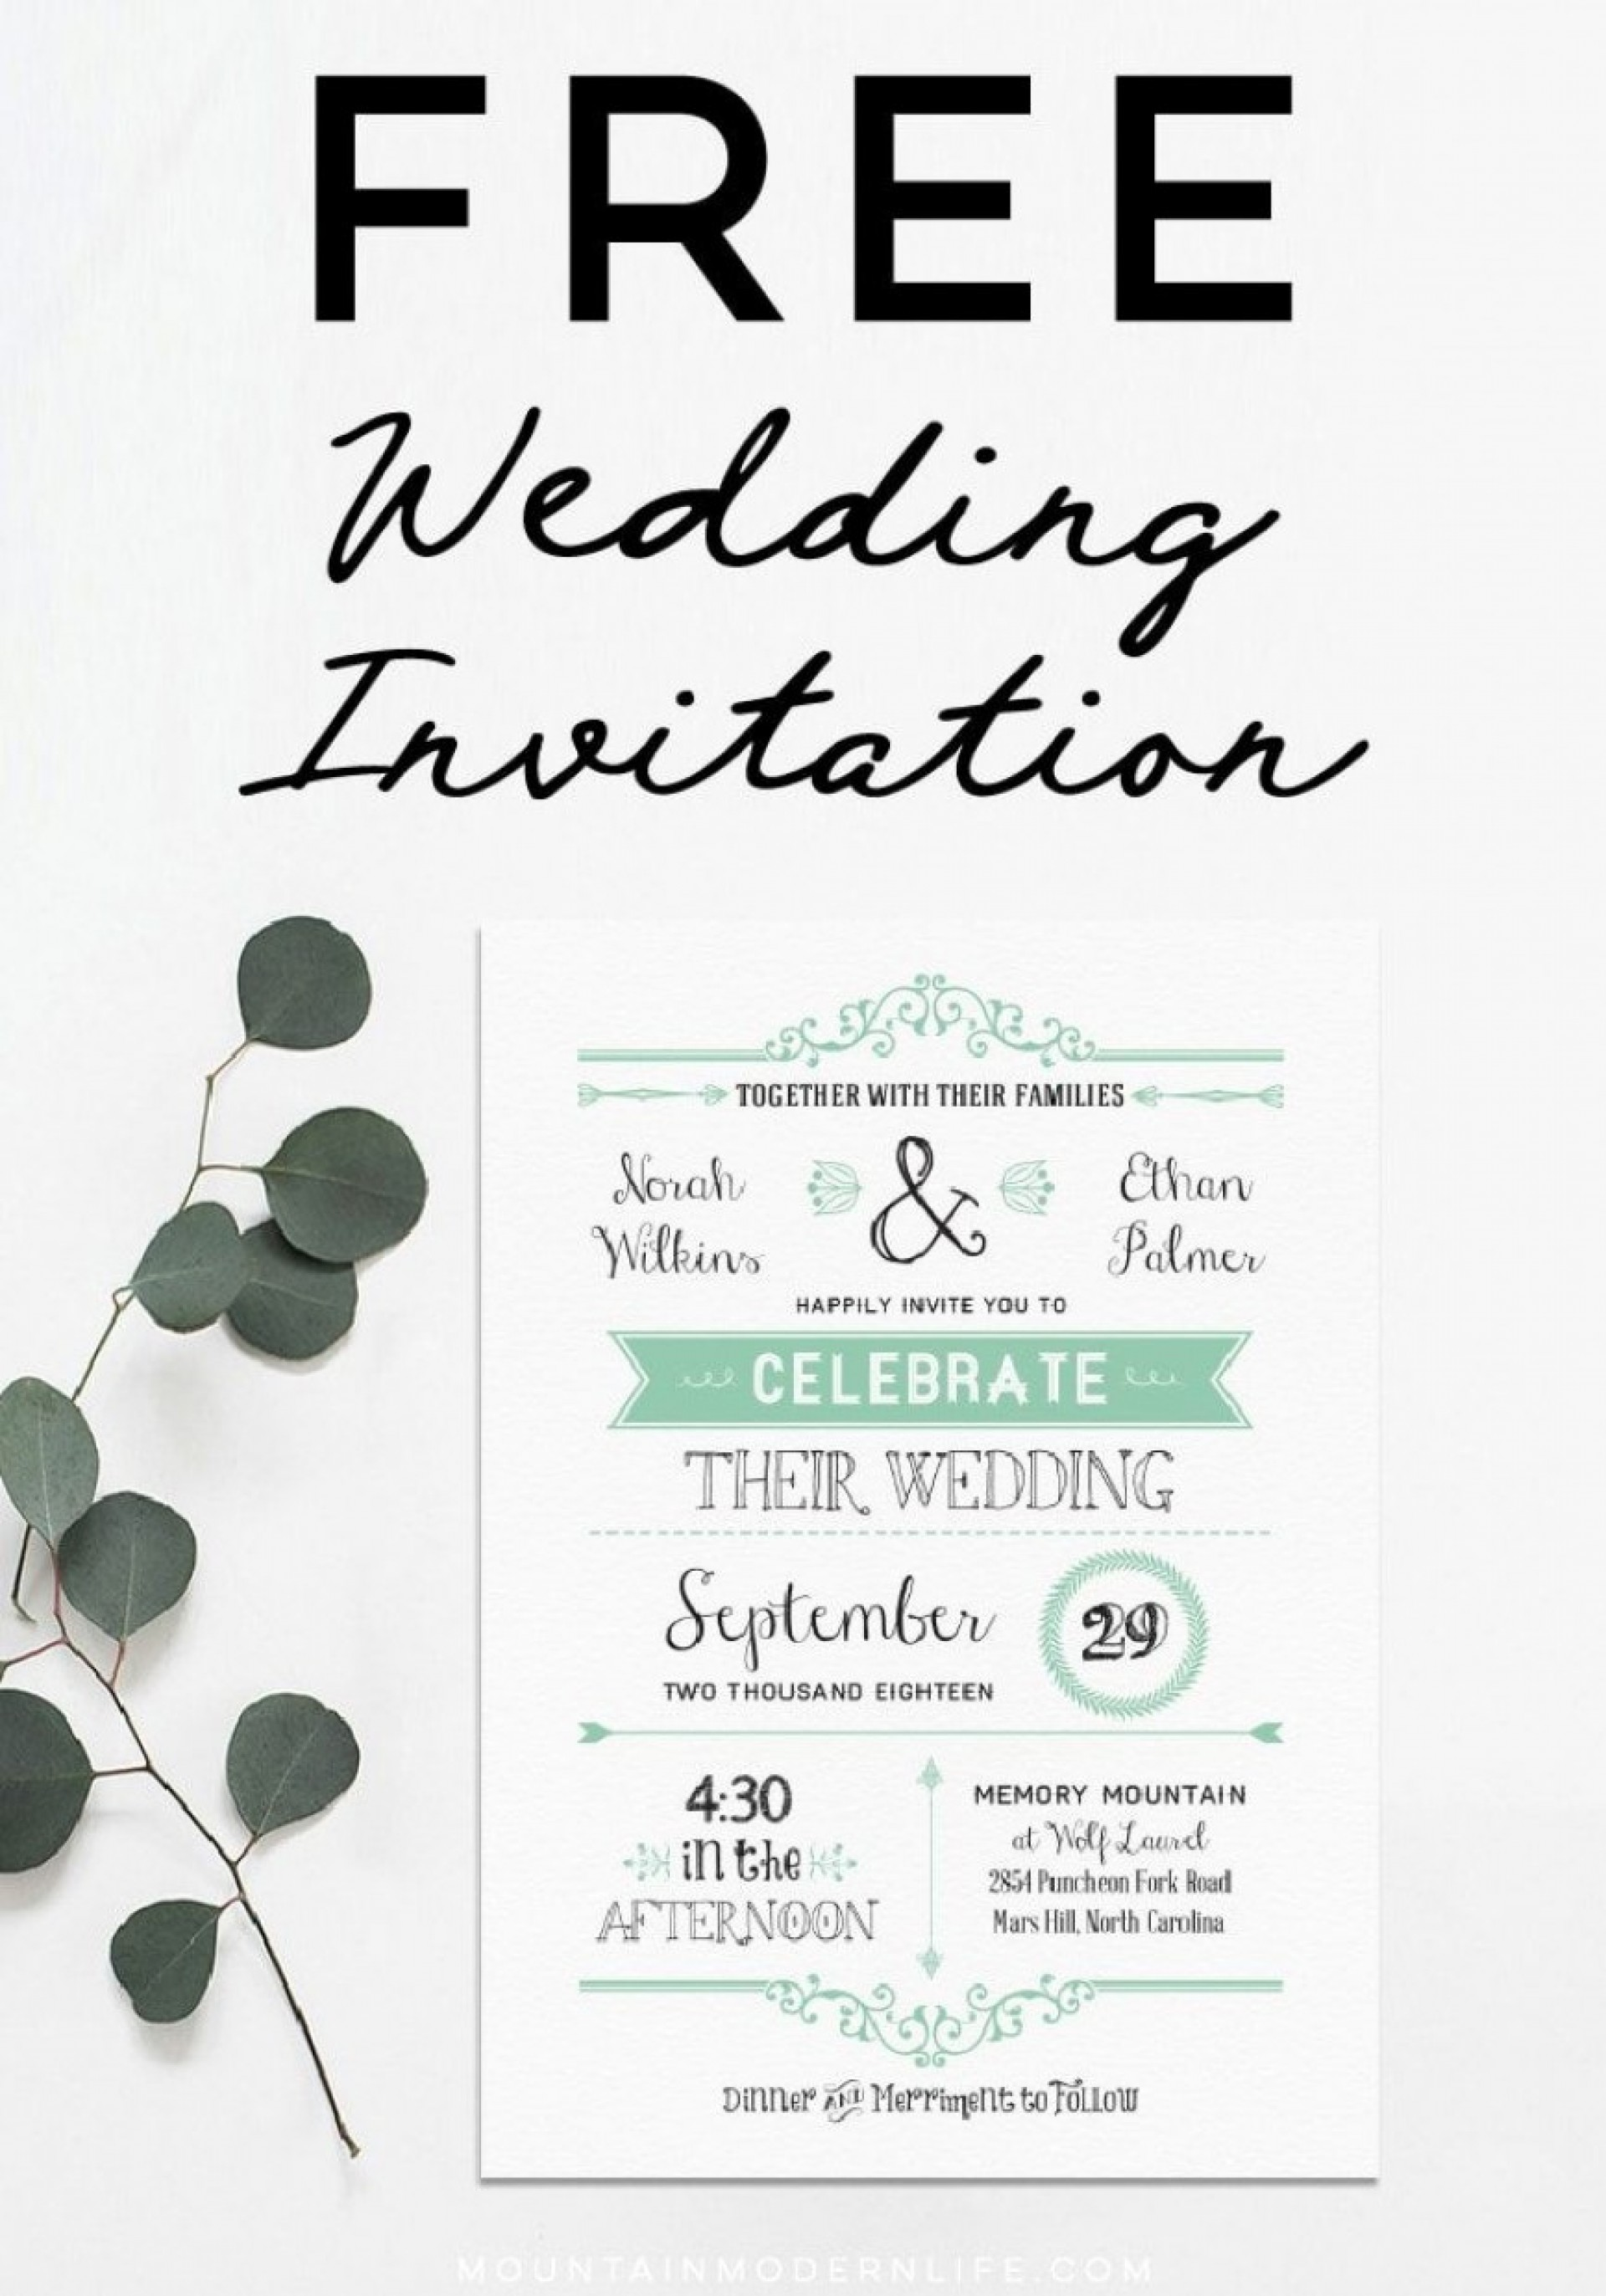 003 Unbelievable Wedding Invitation Template Free Inspiration  Card Psd For Word Muslim 20071920